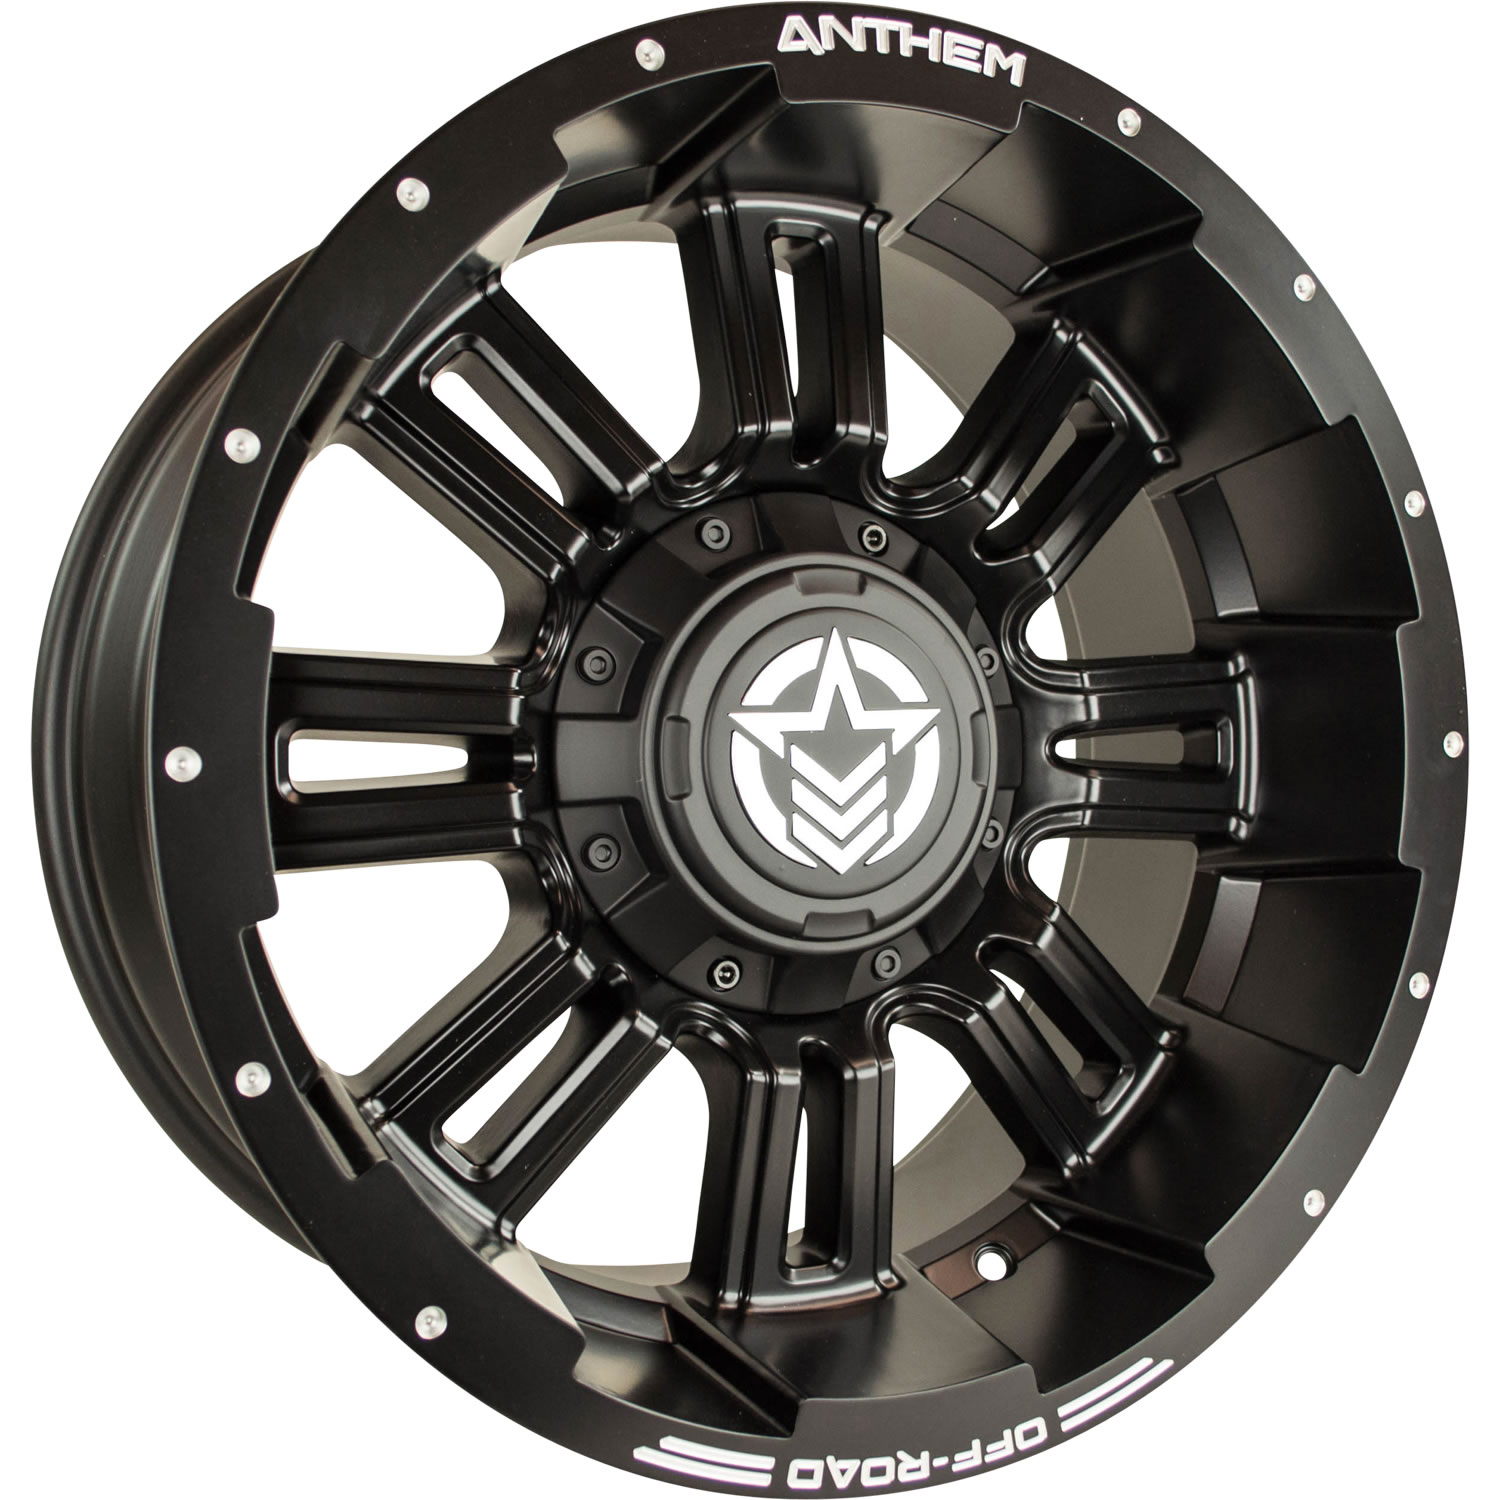 Anthem Enforcer 20x10 24